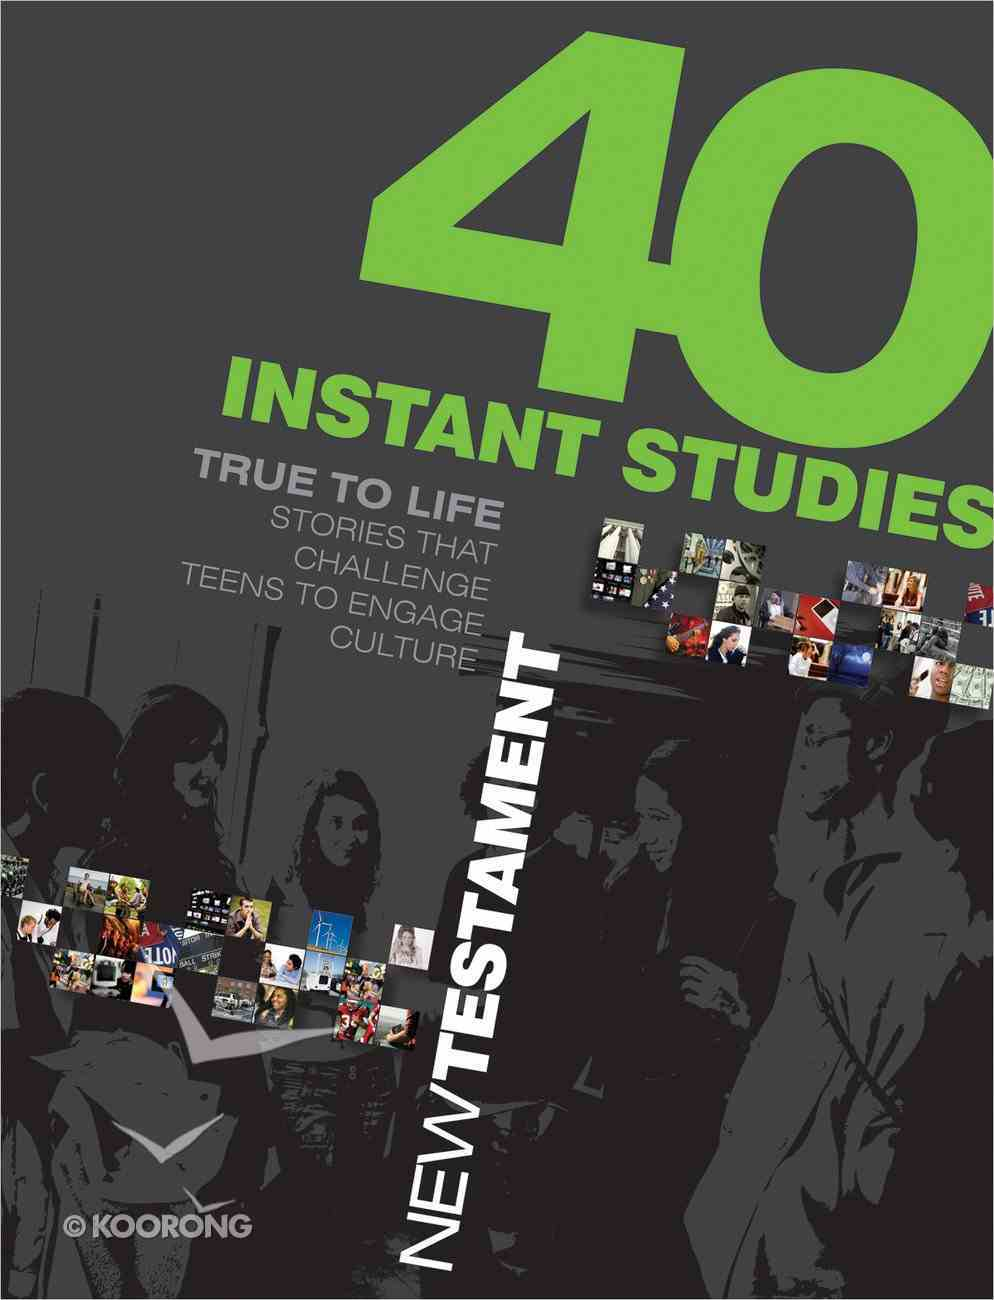 True to Life: 40 Instant Studies - New Testament Paperback